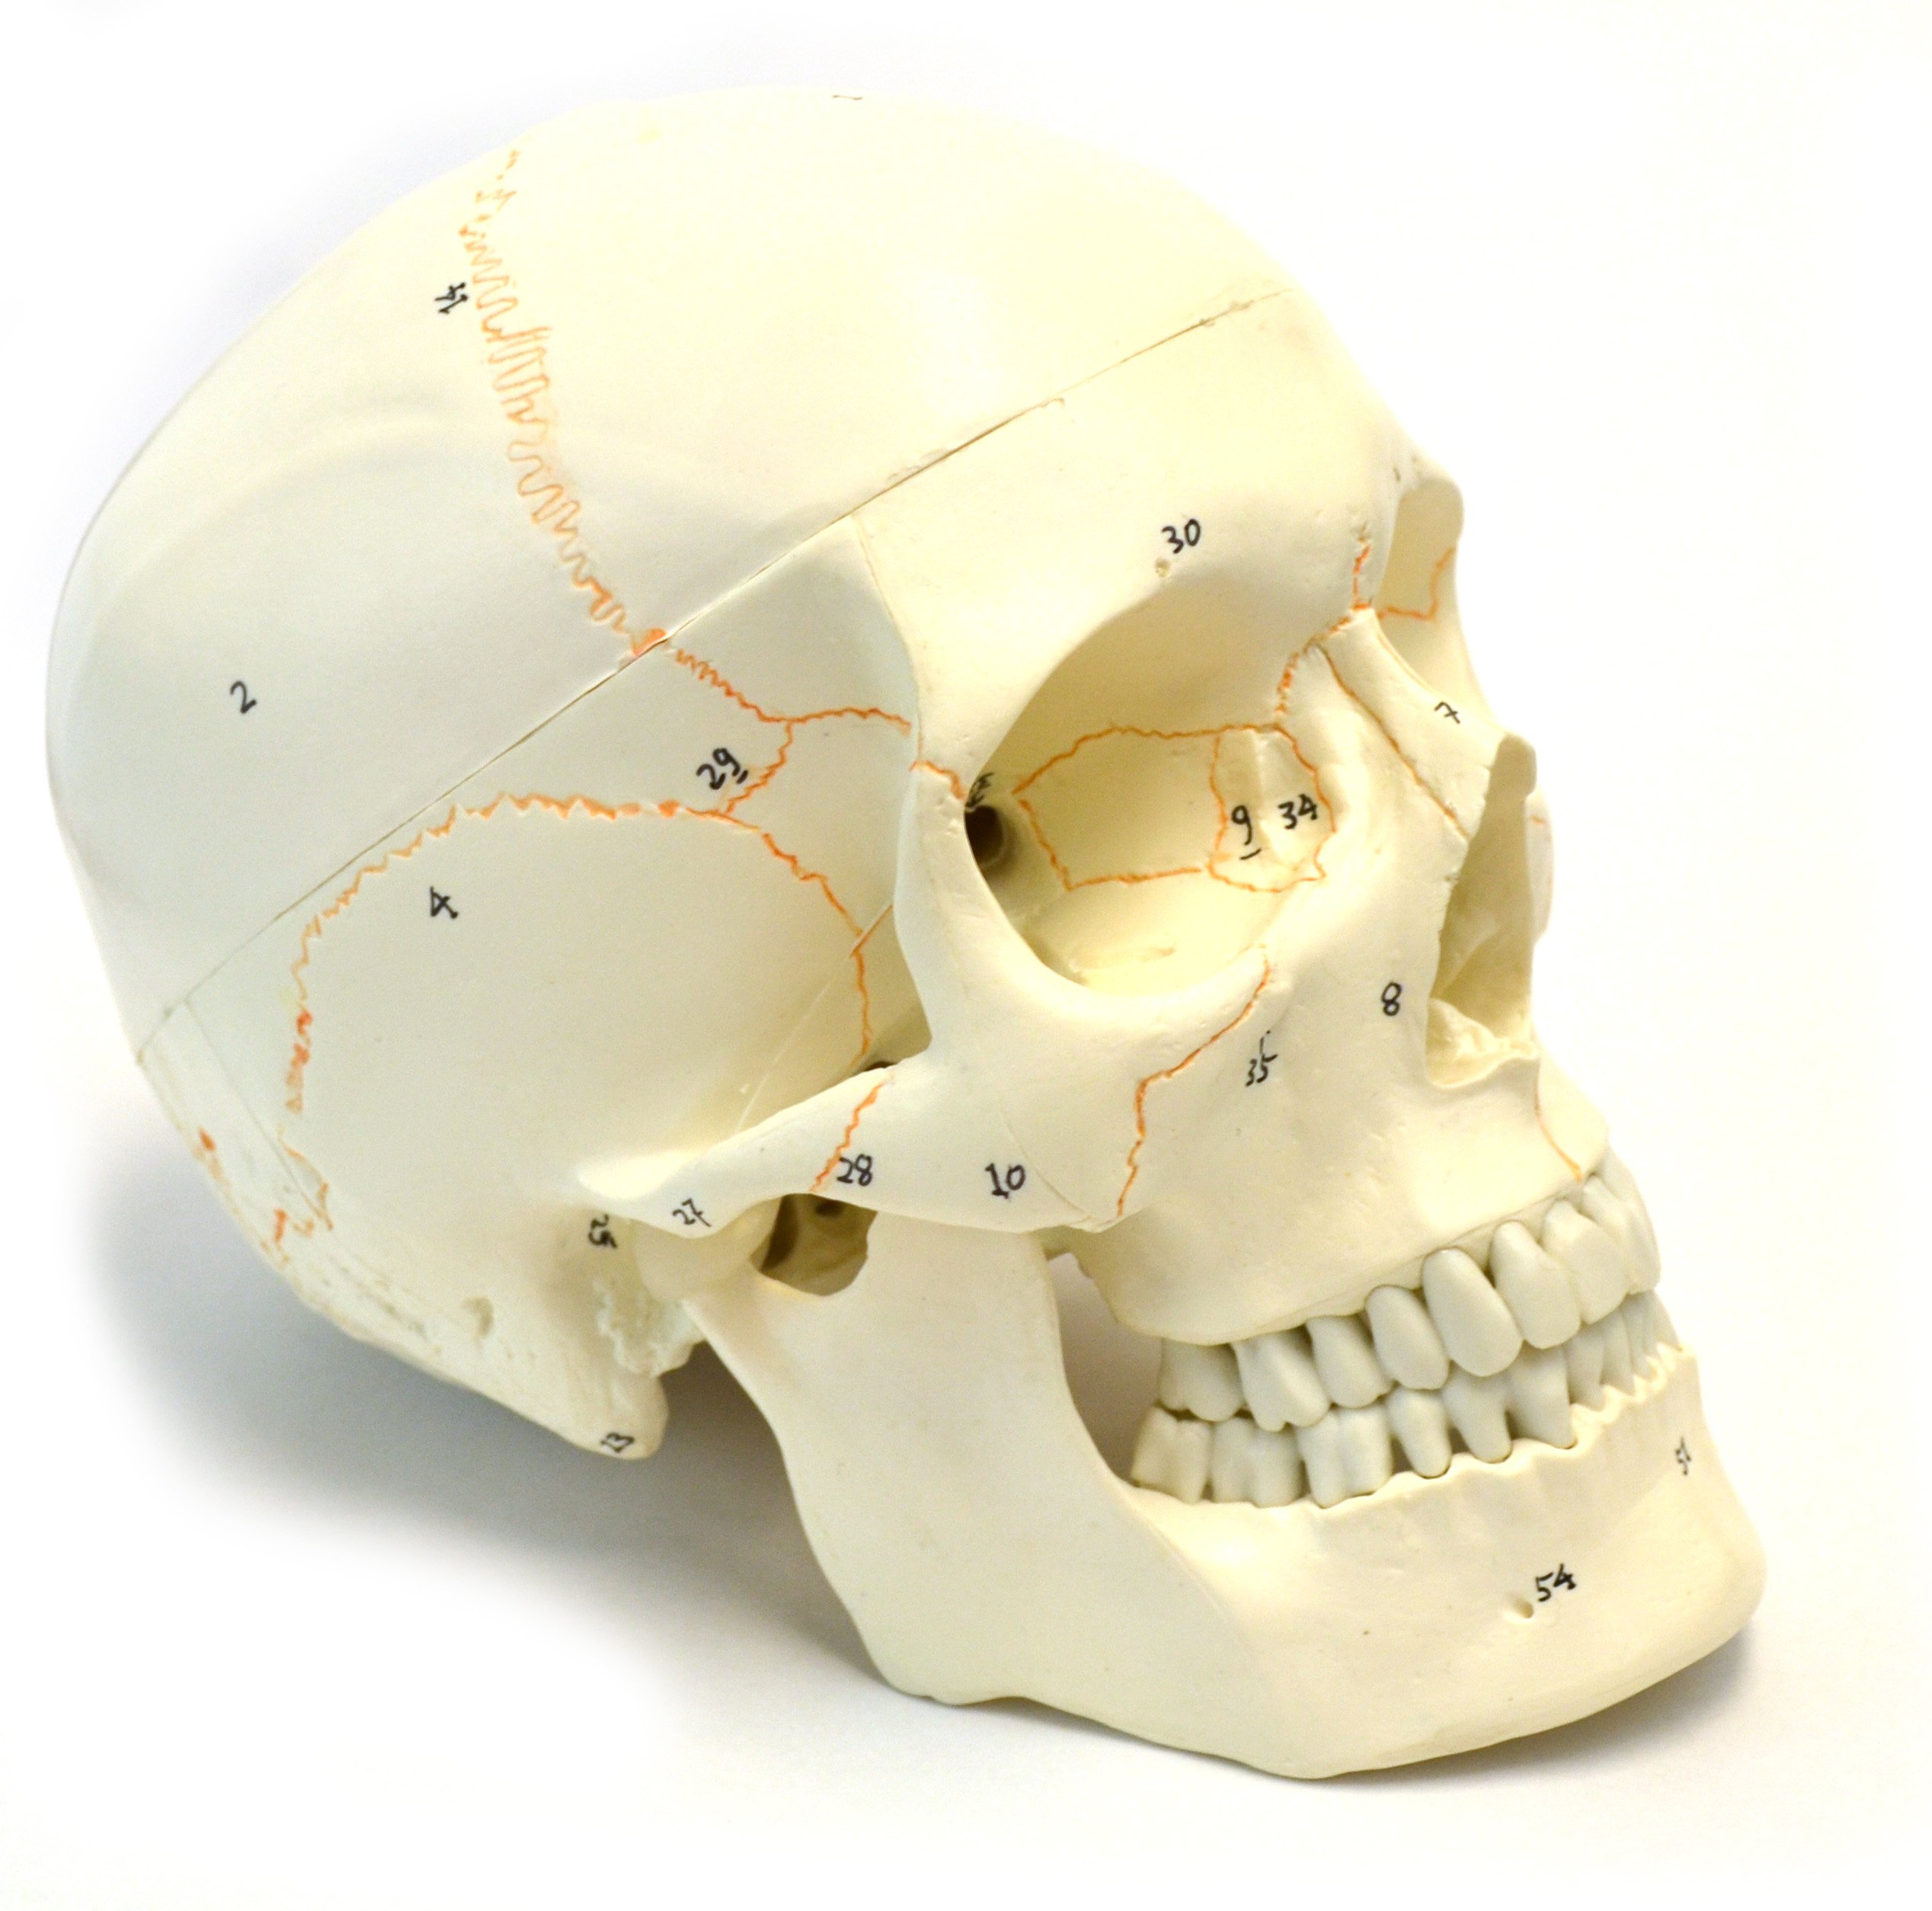 Numbered Human Adult Skull Anatomical Model, Medical Quality, Life Sized (9'' Height) - 3 Part - Removable Skull Cap - Shows Most Major Foramen, Fossa, and Canals - Includes Full Set of Teeth by hBARSCI (Image #6)